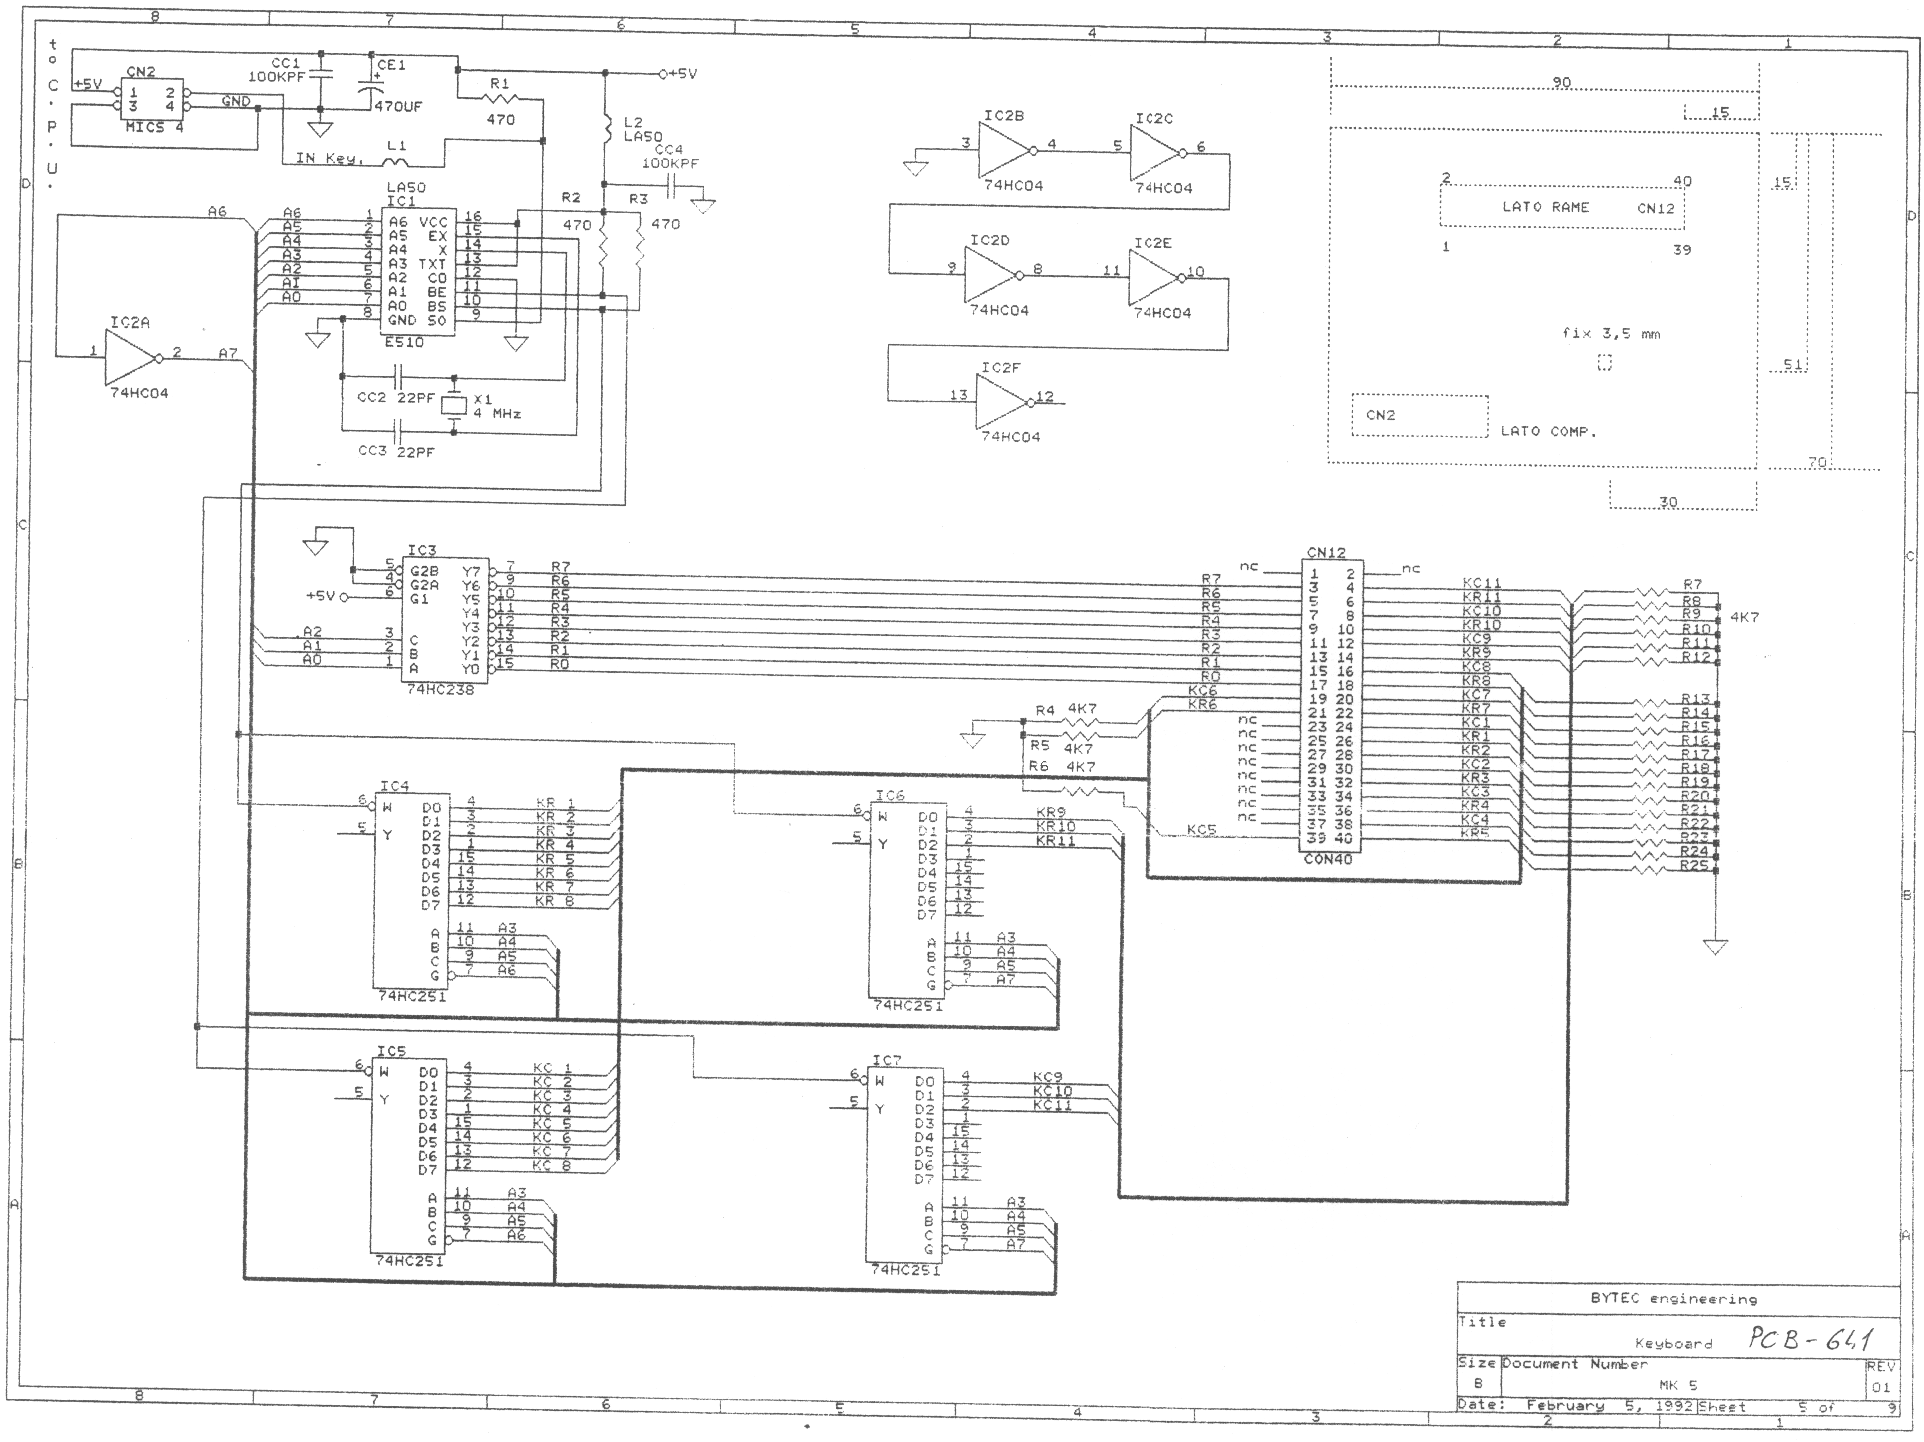 John Pallisters Lmk3 Page Googling Around I Find Schematics Like This The E510 And Decoding Logic